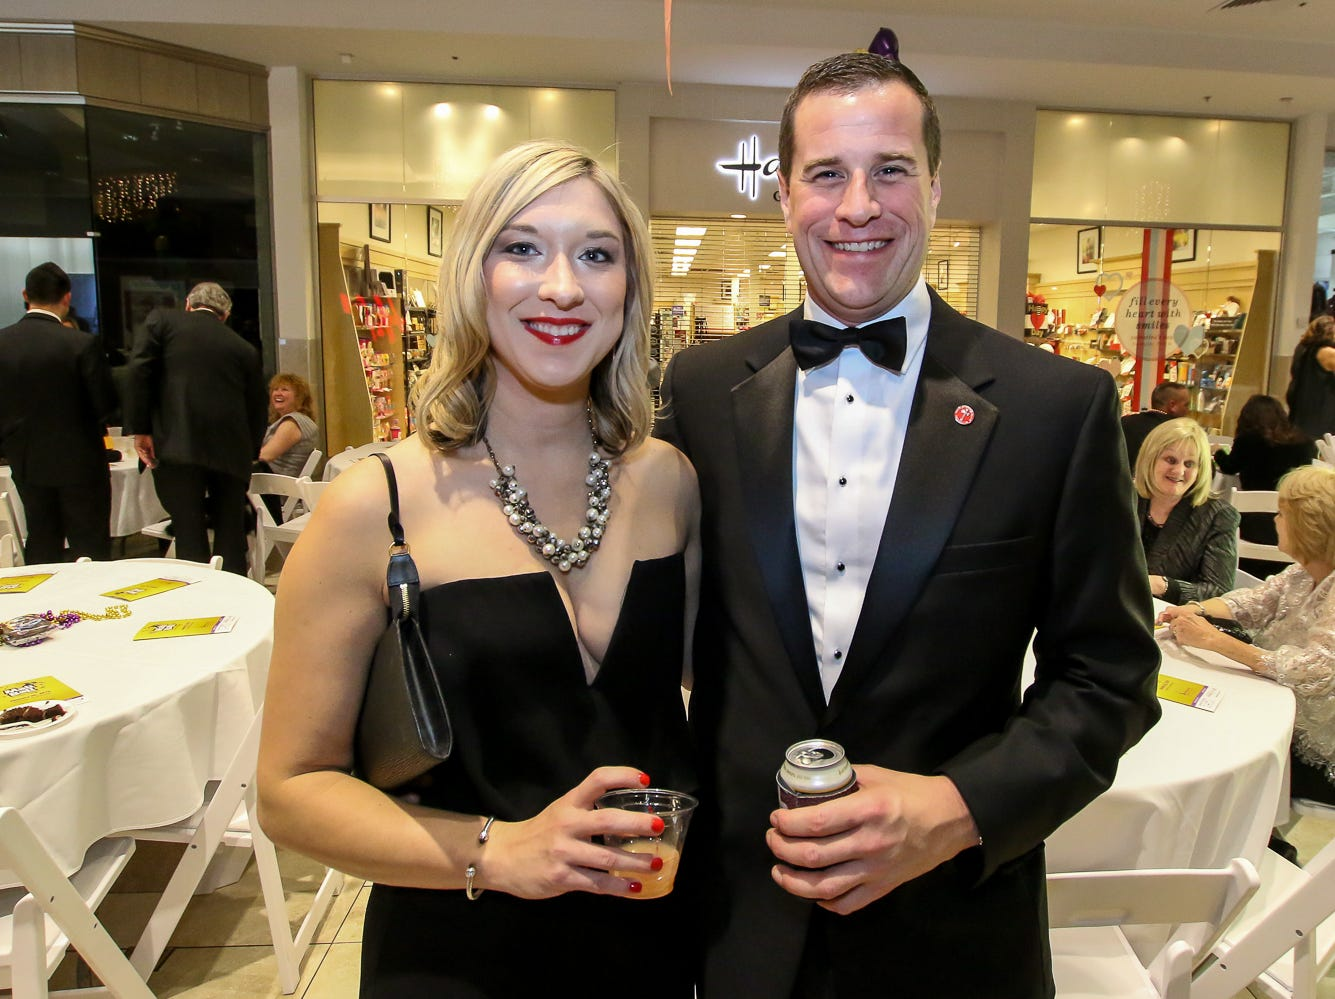 Cordova Mall hosted the 24th annual Cordova Mall Ball on Saturday, January 26, 2019. The event raises money for The Studer Family Children's Hospital at Sacred Heart.